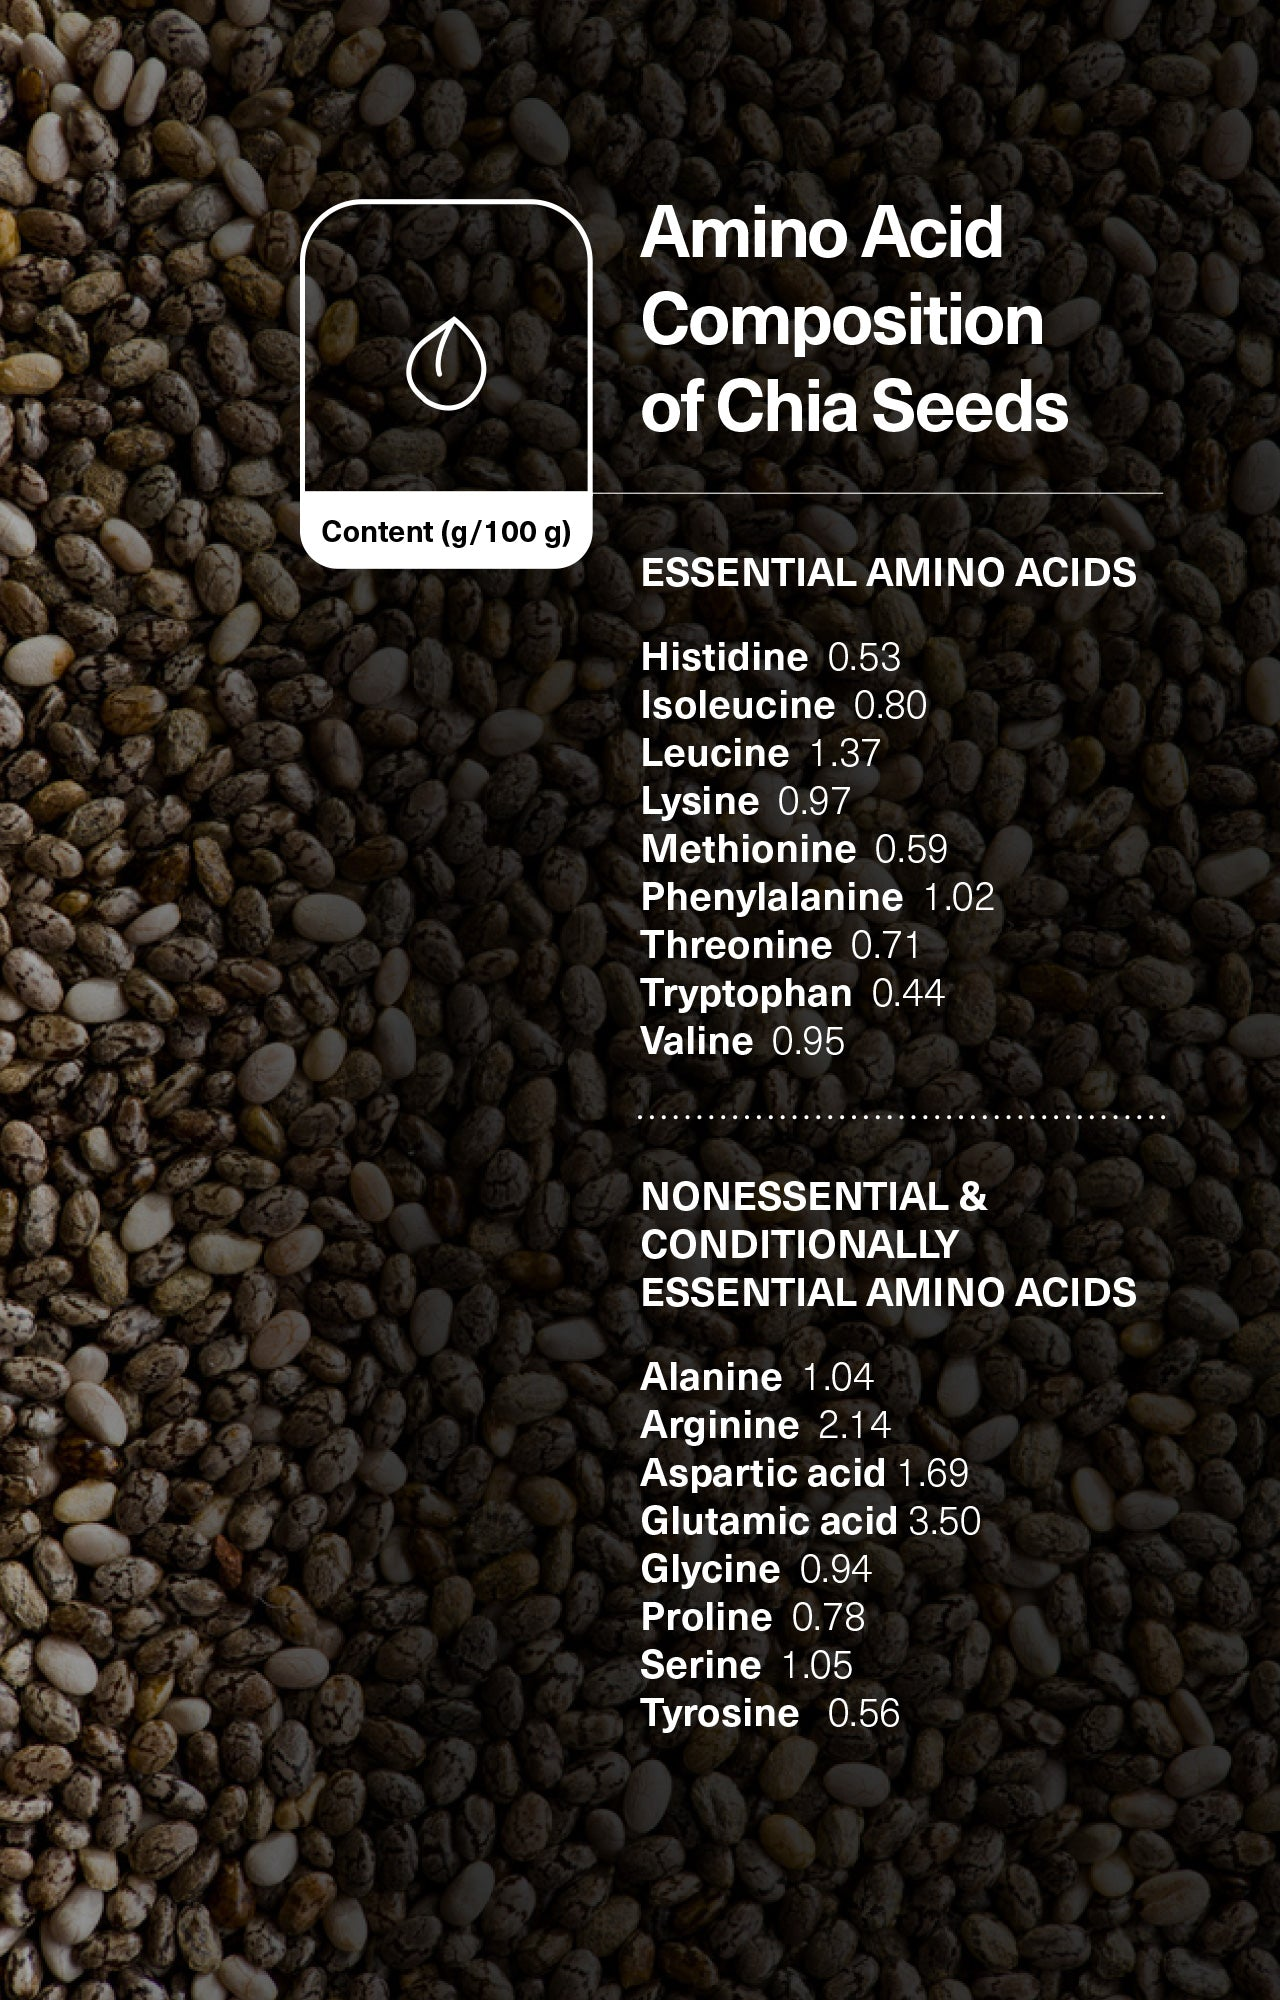 Amino Acid Composition of Chia Seeds